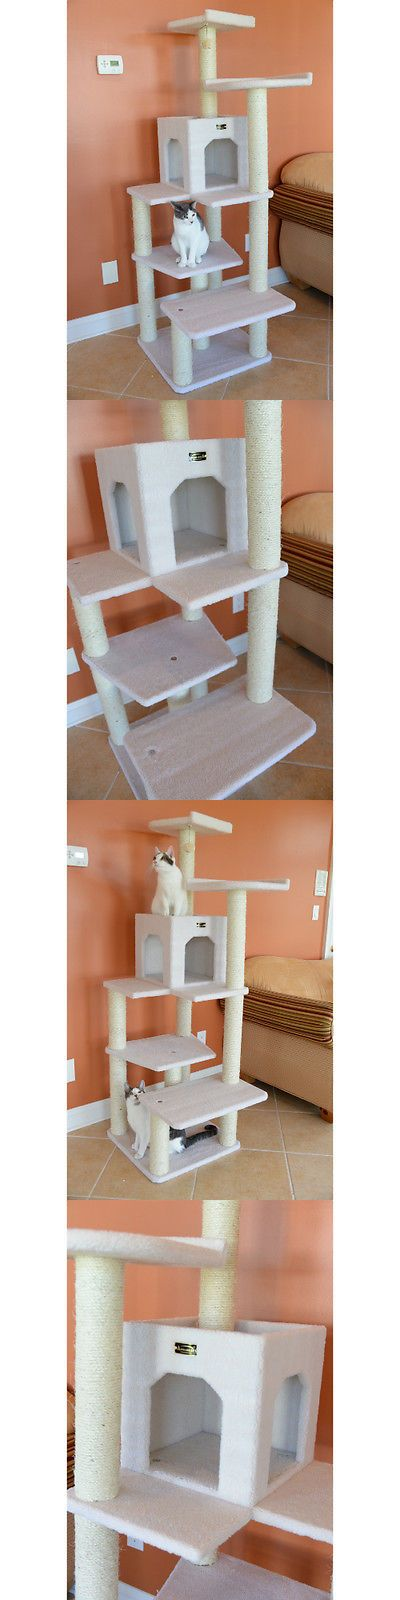 Cat Lover Products 117422: Pets Furniture House Large Cats Tree Condo Scratching Post Perch Loft Hammock BUY IT NOW ONLY: $189.43